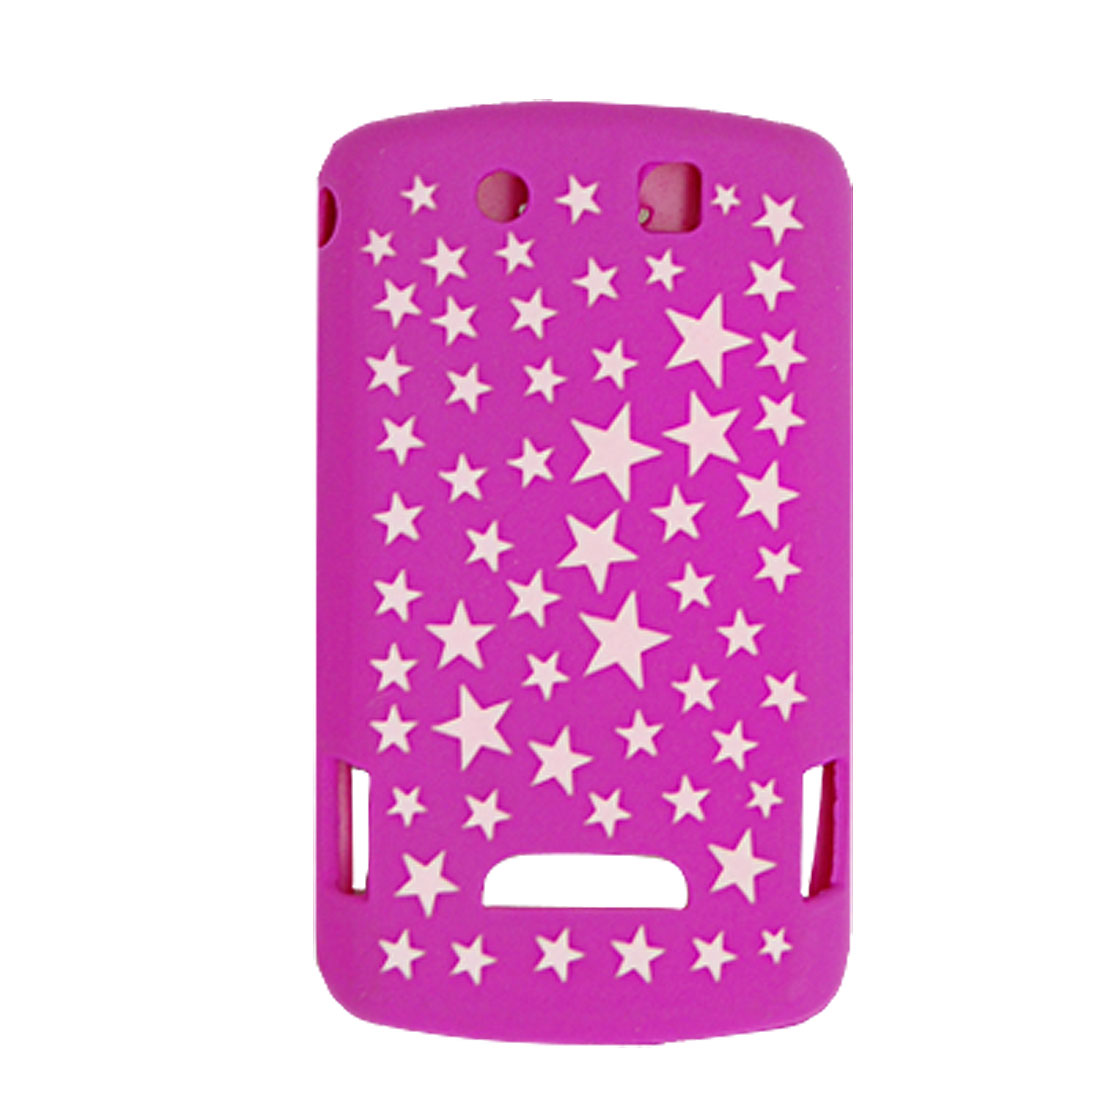 Laser Cut Star Silicone Skin Case Cover for Blackberry 9500